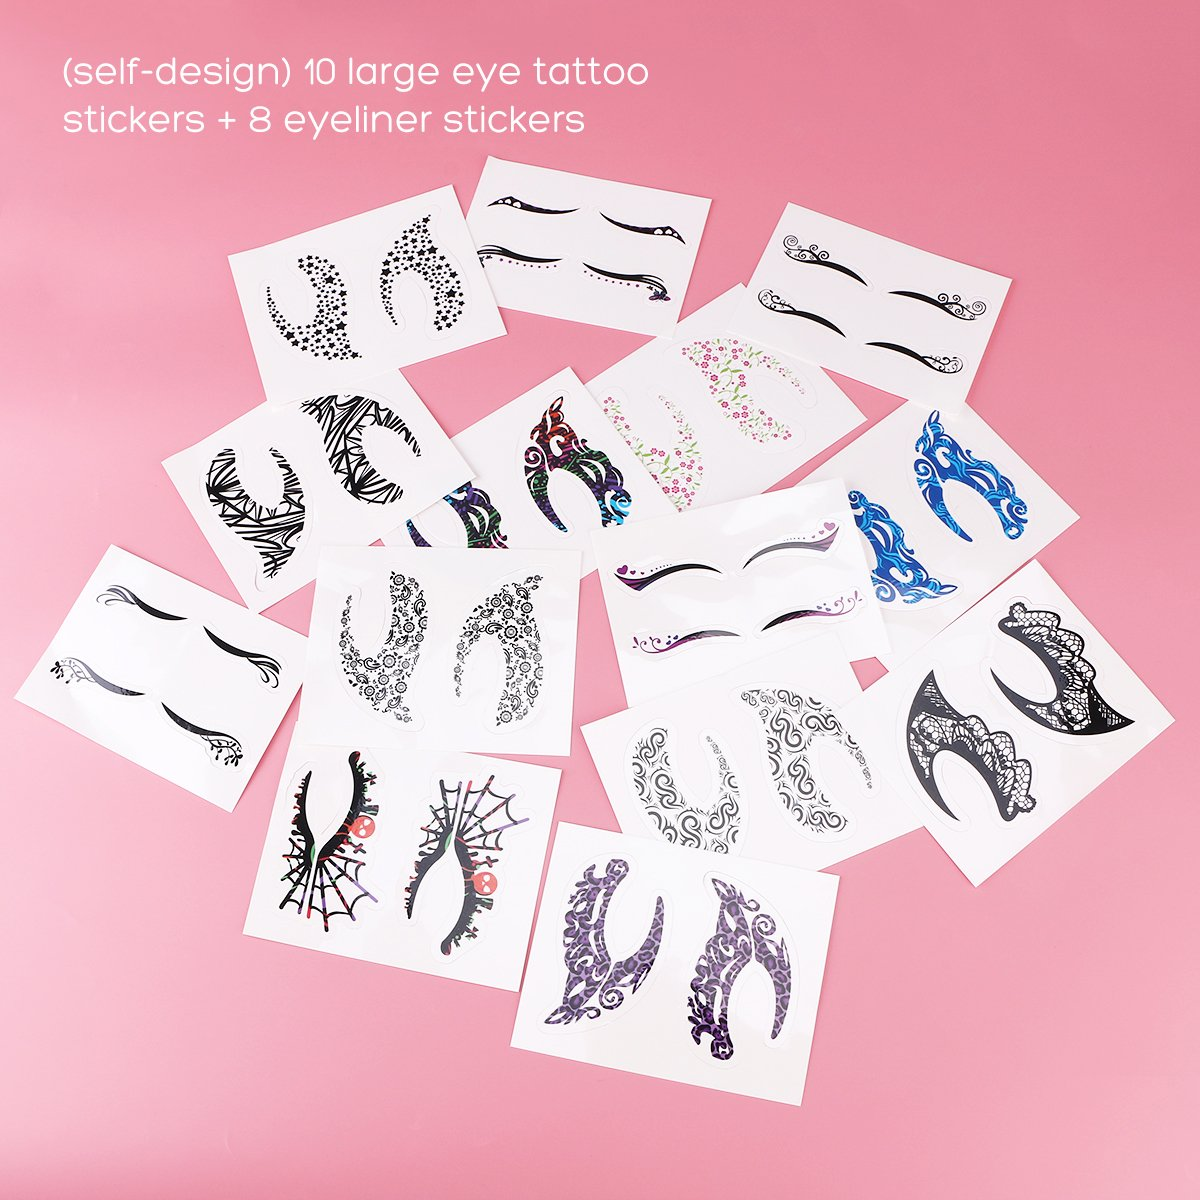 Temporary Eye Tattoo, 18 Pairs Eye Tattoo Stickers with Waterproof Eyeshadow and Eyeliner Designs